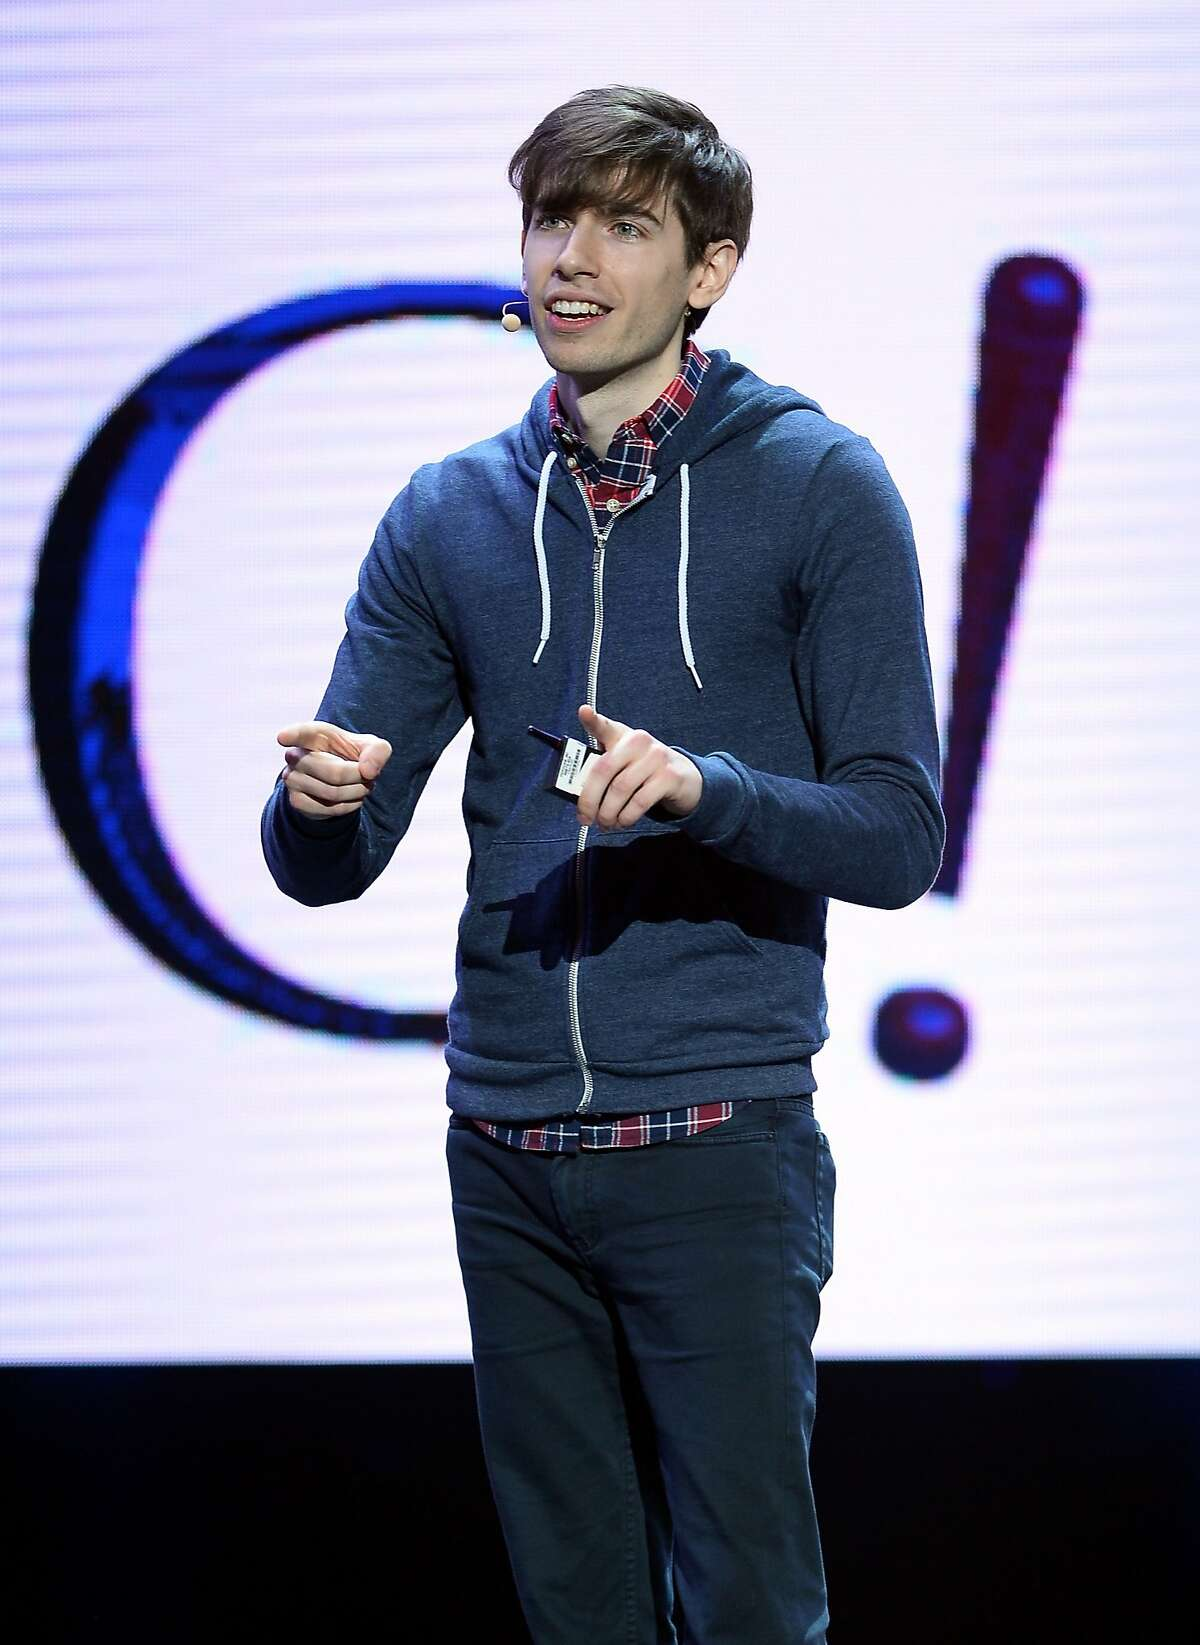 LAS VEGAS, NV - JANUARY 07: Tumblr CEO David Karp speaks during a keynote address by Yahoo! President and CEO Marissa Mayer at the 2014 International CES at The Las Vegas Hotel & Casino on January 7, 2014 in Las Vegas, Nevada. CES, the world's largest annual consumer technology trade show, runs through January 10 and is expected to feature 3,200 exhibitors showing off their latest products and services to about 150,000 attendees. (Photo by Ethan Miller/Getty Images)